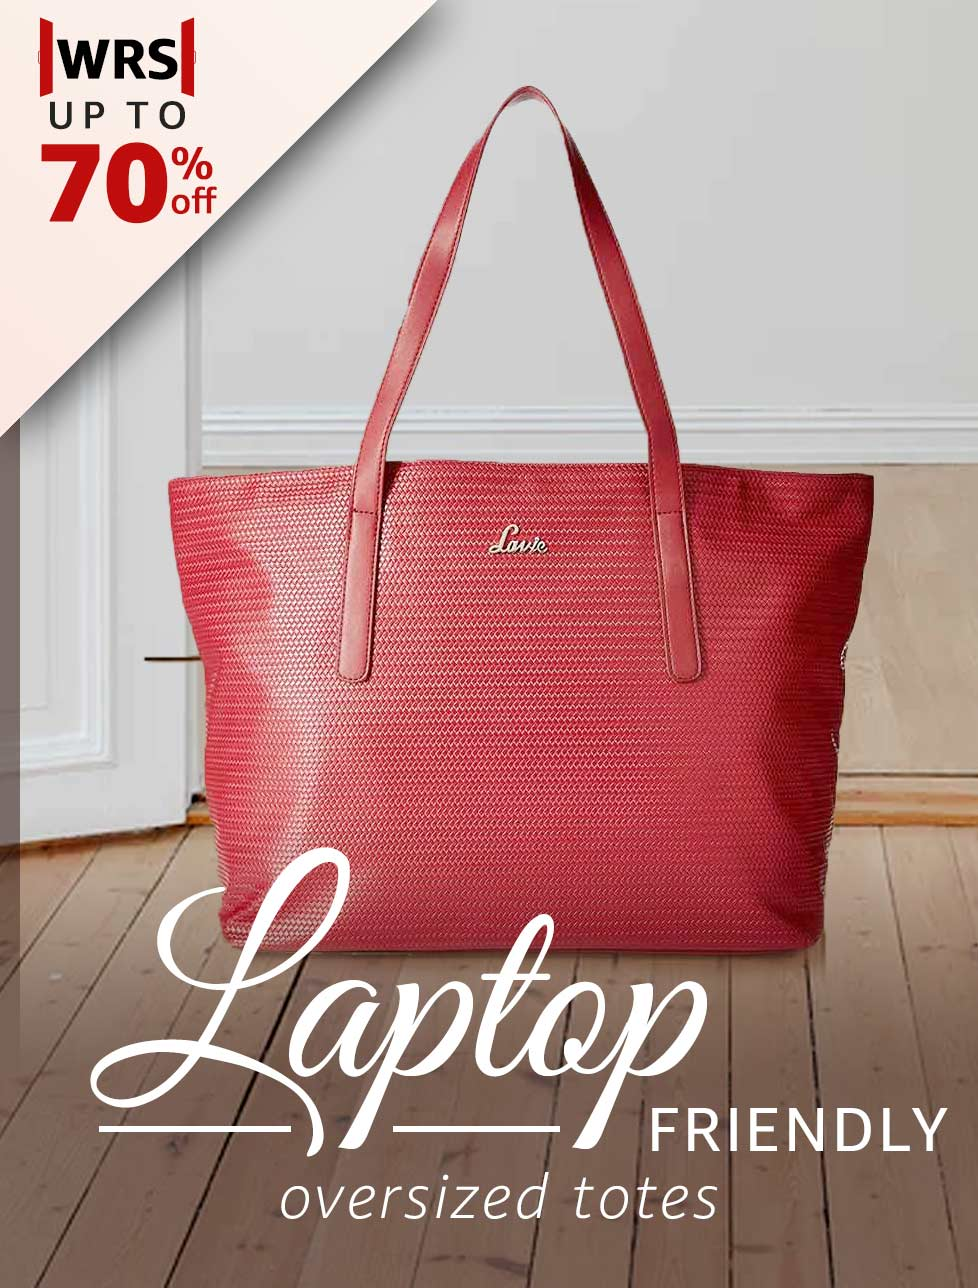 Laptop friendly over-sized totes